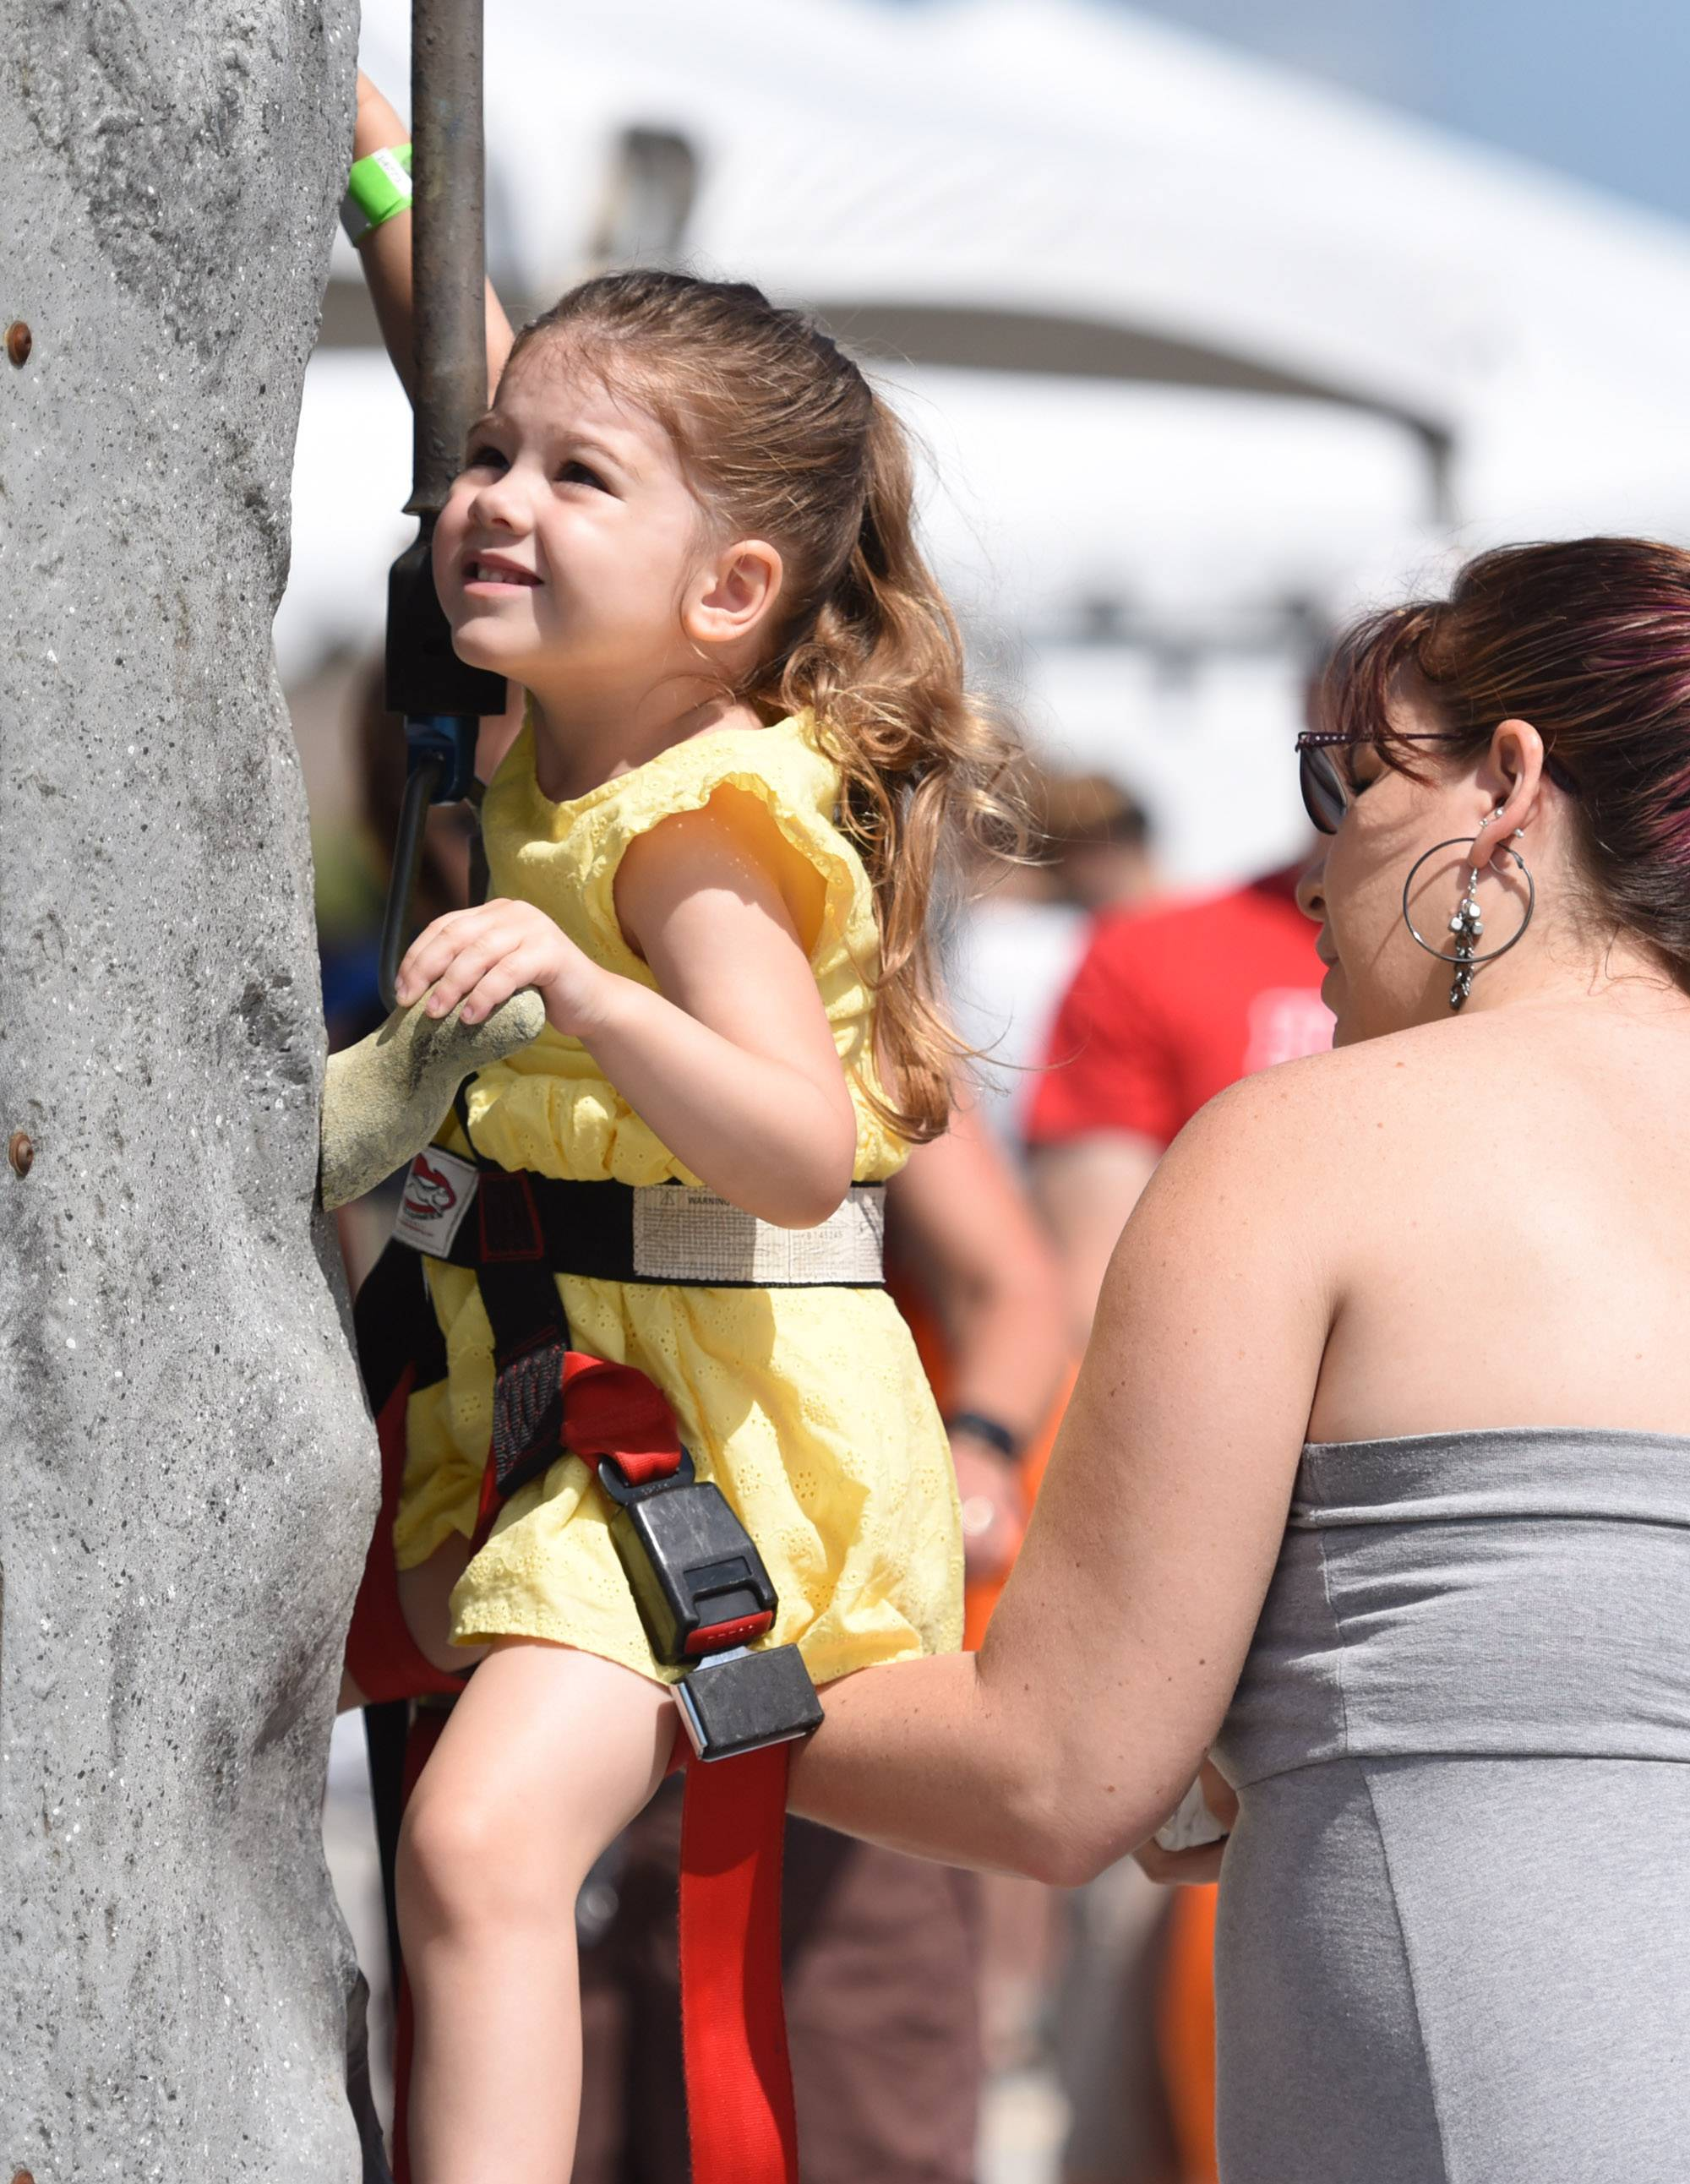 Amber Drago, who turns 4 next month, climbs a rock wall with a little boost from her mother Heather, of Lake in the Hills at the Centegra Family Health Fest in Huntley Saturday.